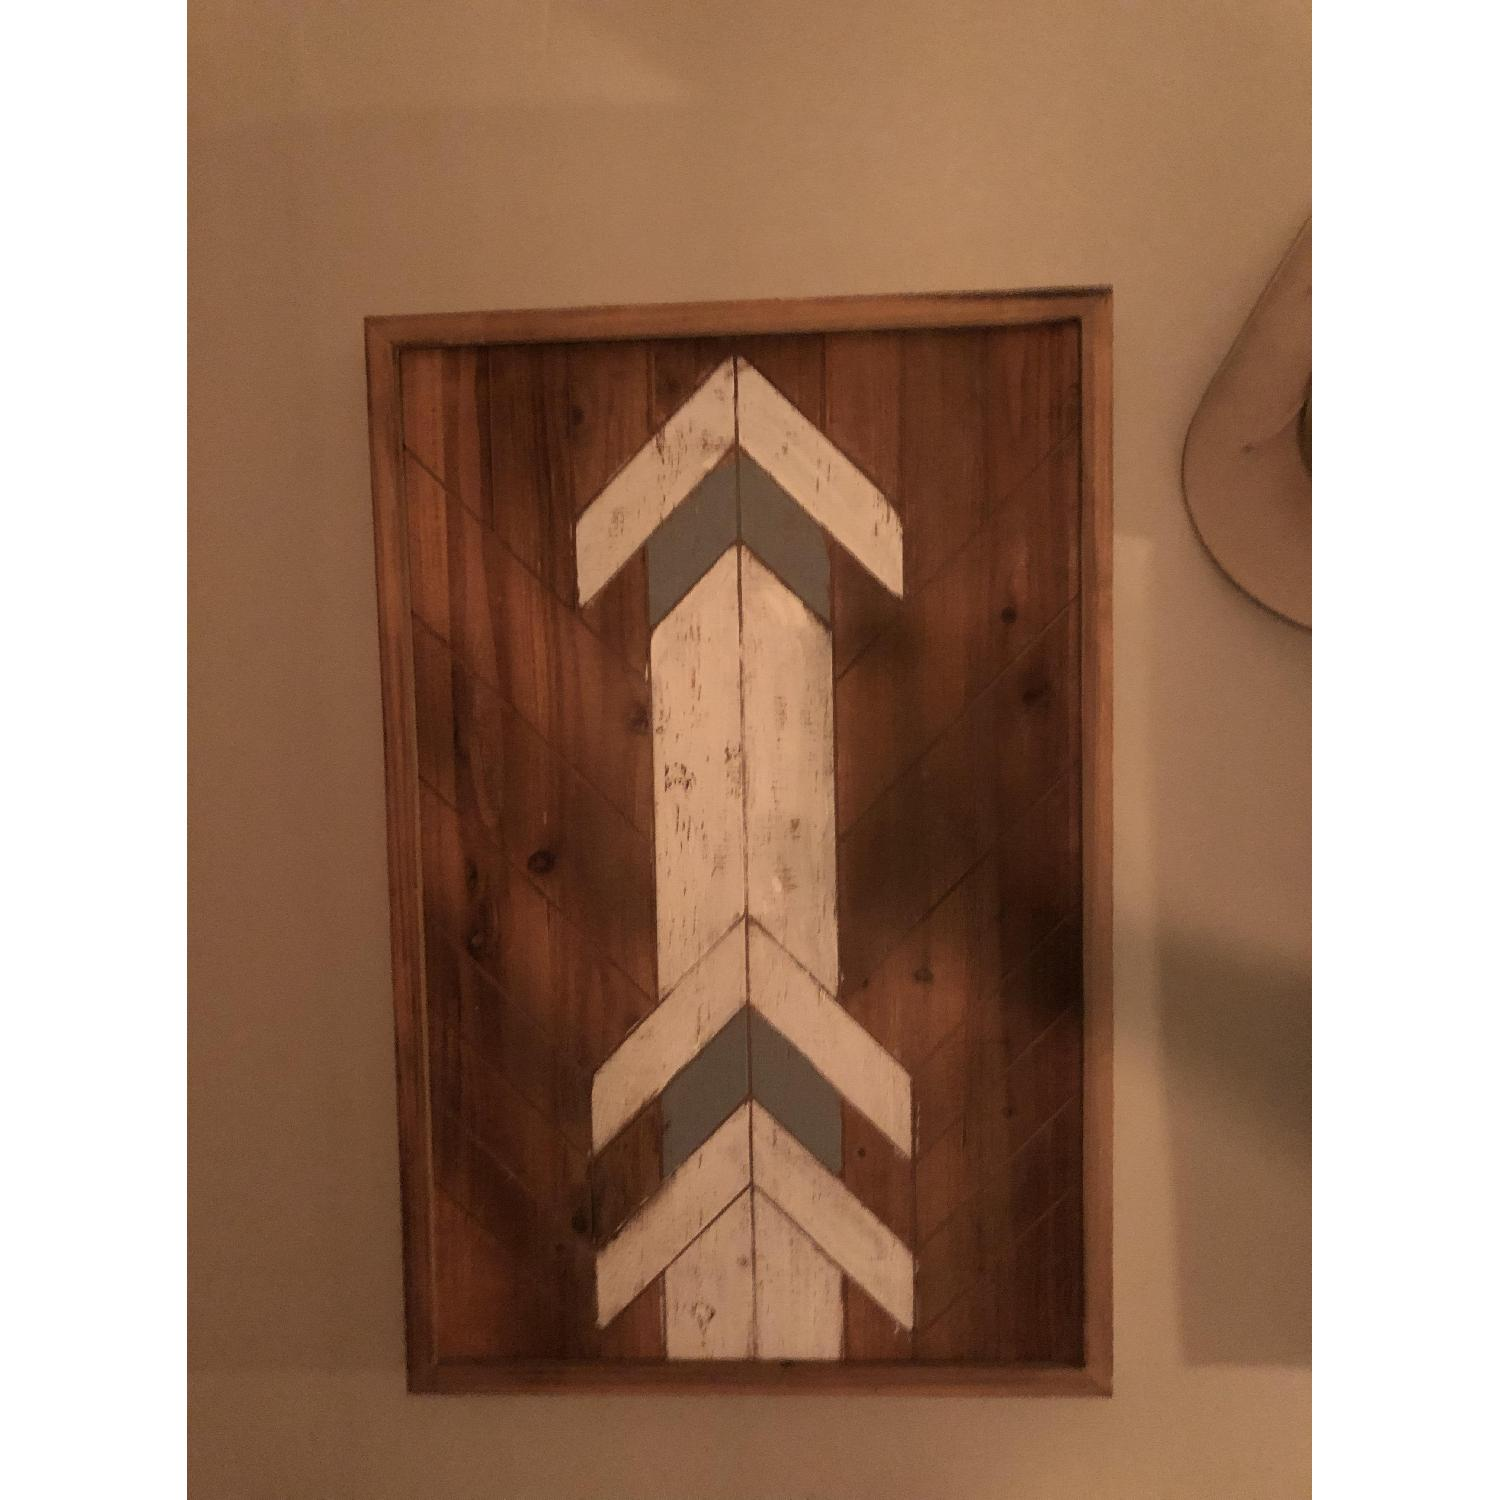 Wooden Rustic Wall Decor - image-3